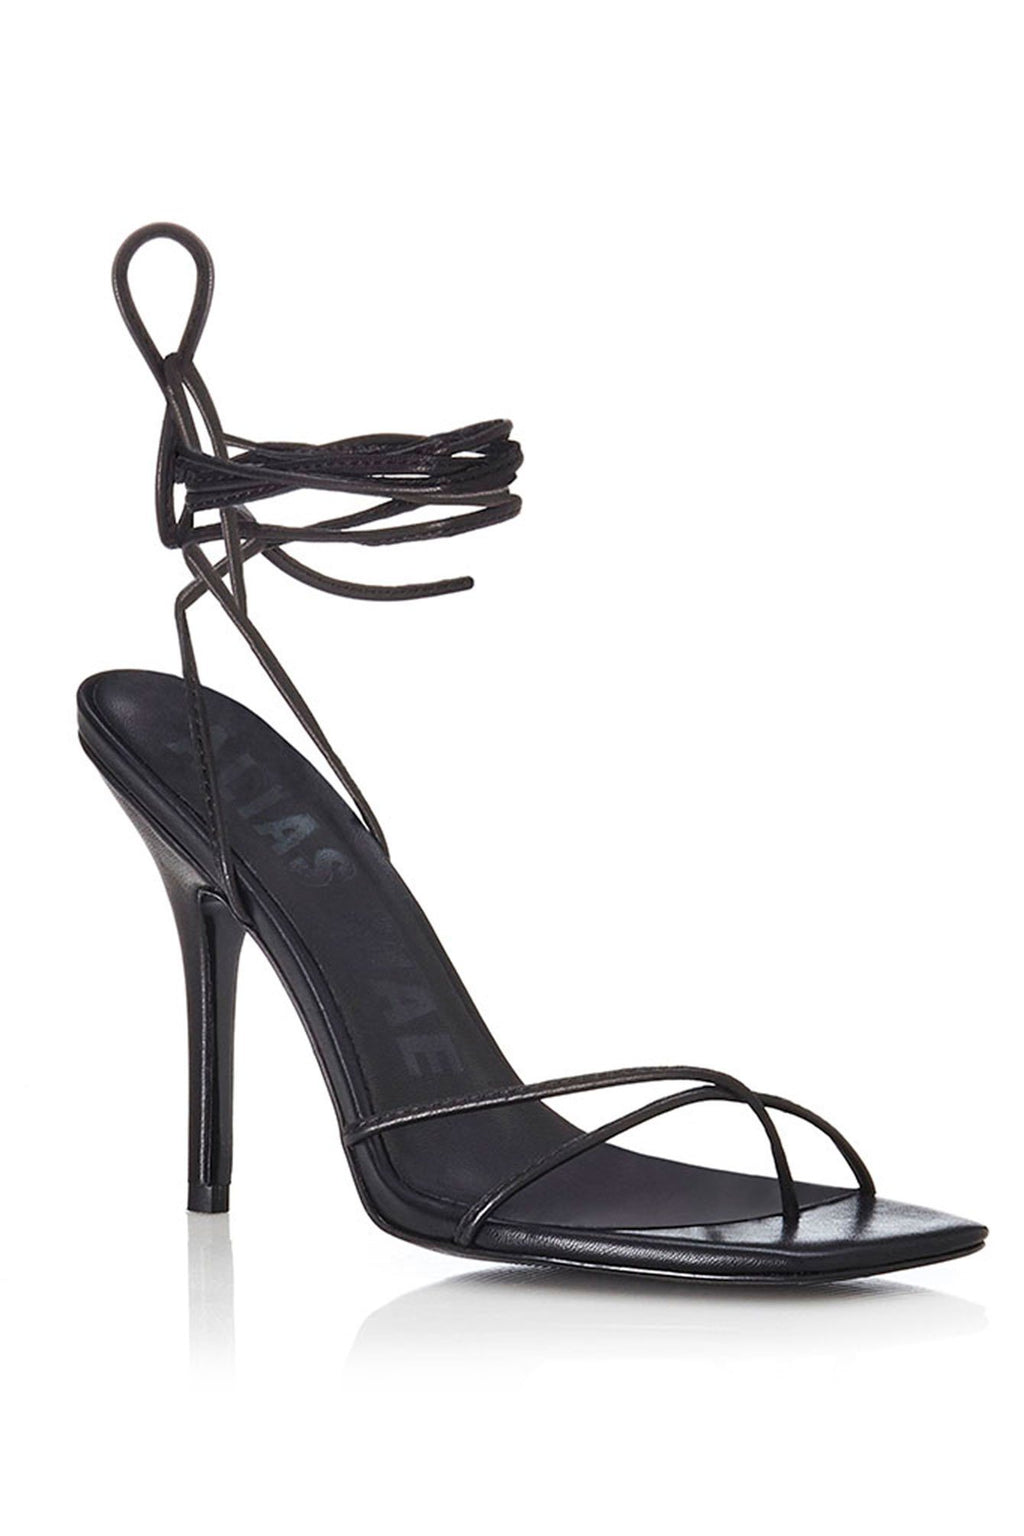 ALIAS MAE | Monroe Sandal Heel - Black Leather